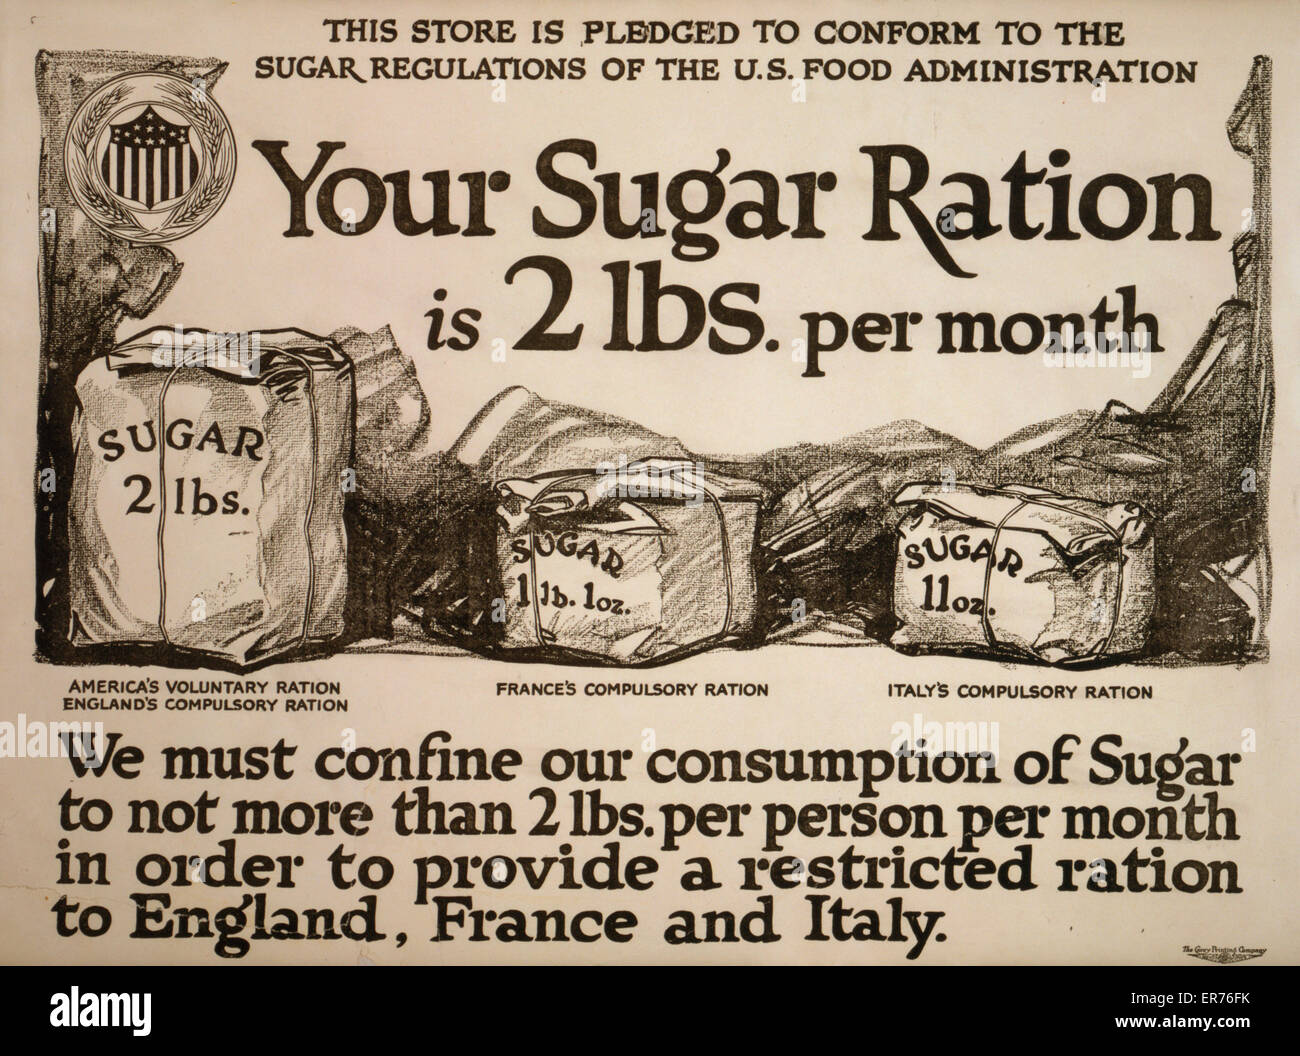 Your sugar ration is 2 lbs. per month. Poster showing sacks of sugar, comparing America's voluntary ration to - Stock Image